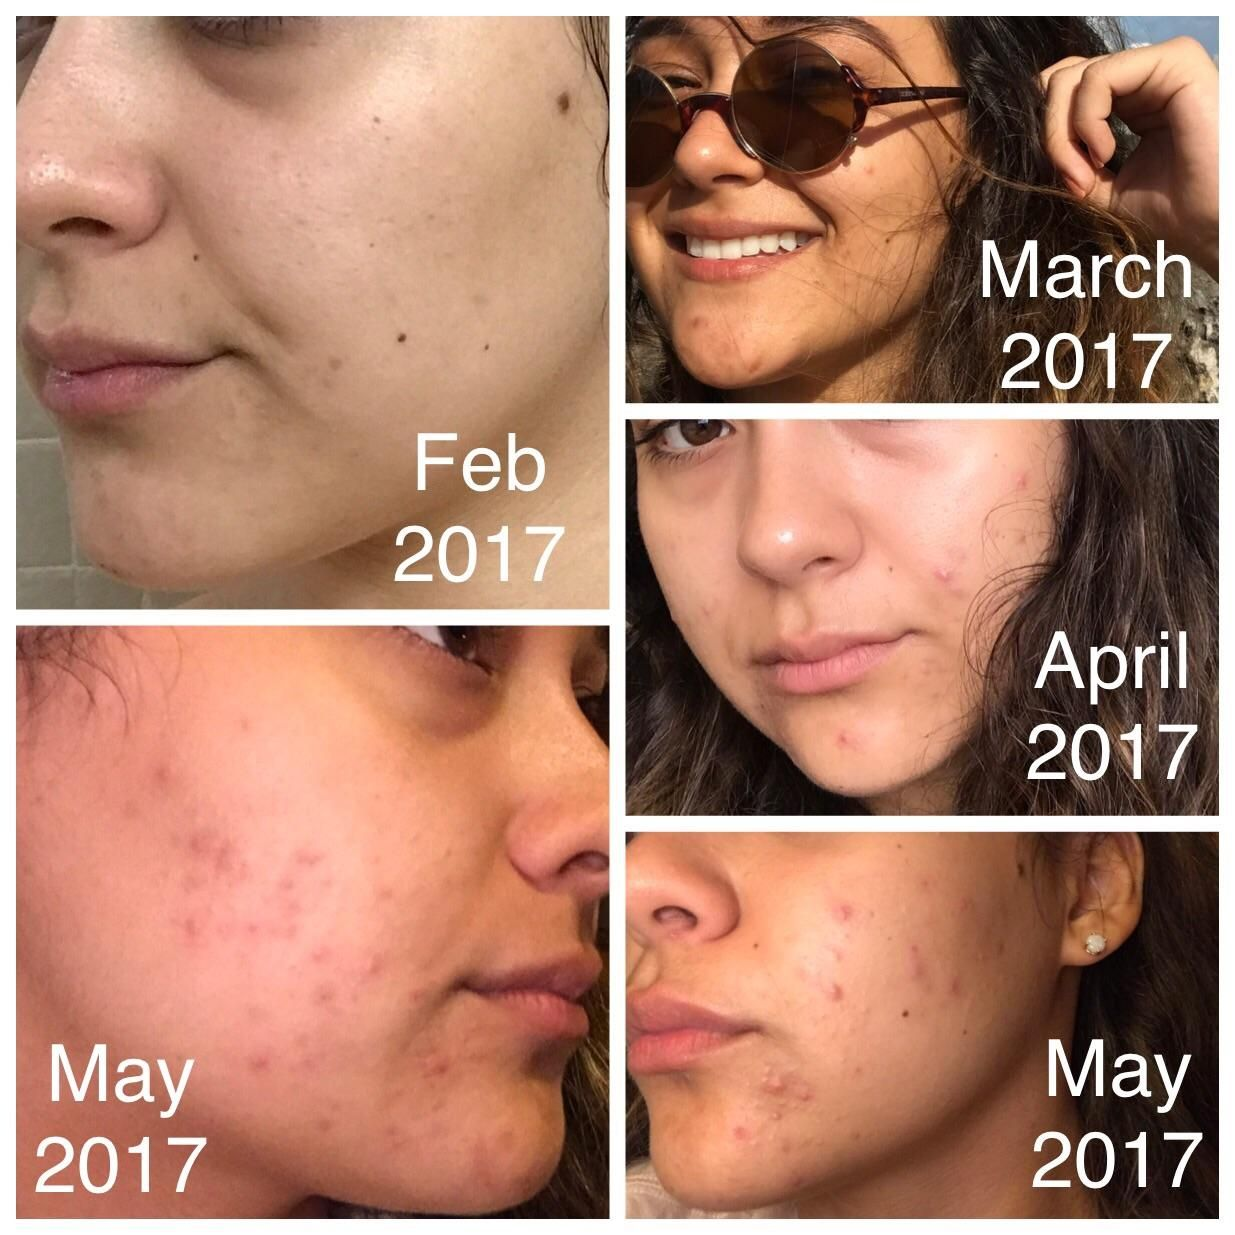 [Acne] Regression I've recently started struggling with